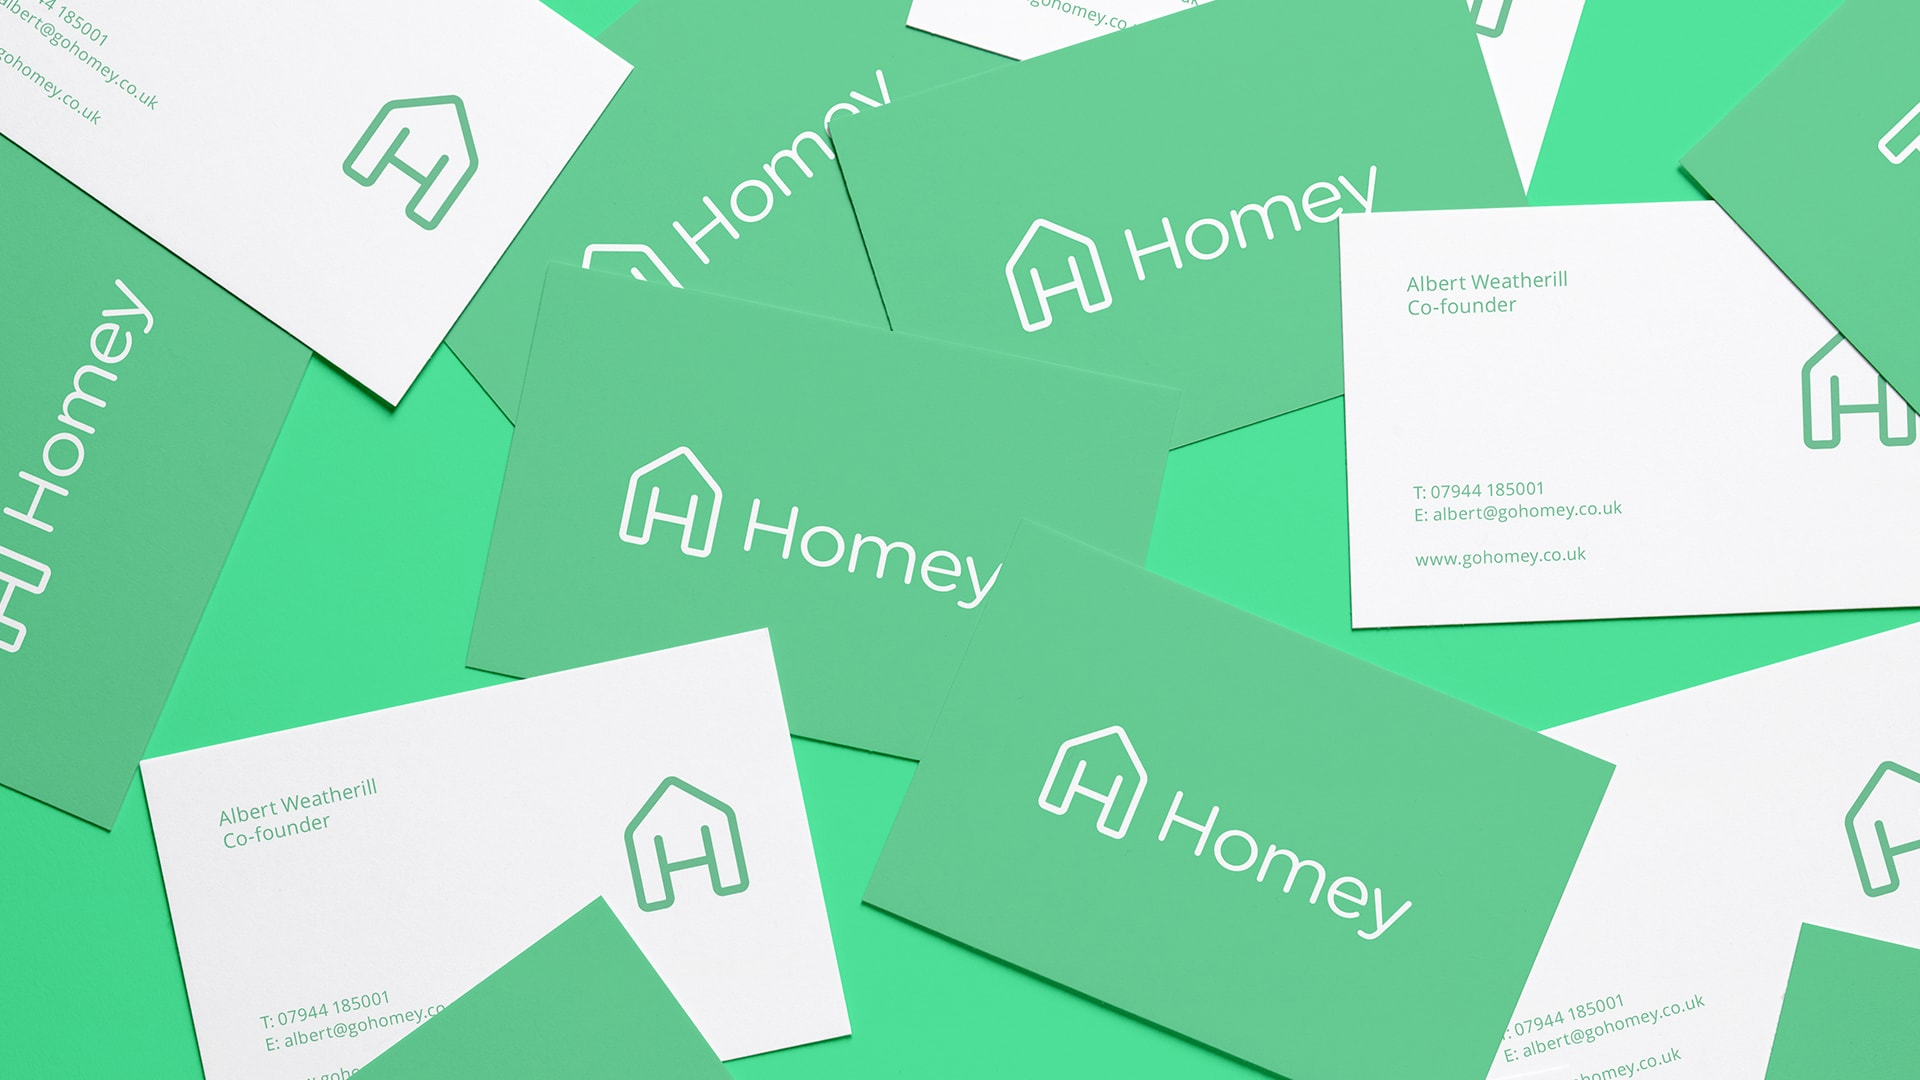 Homey business card design